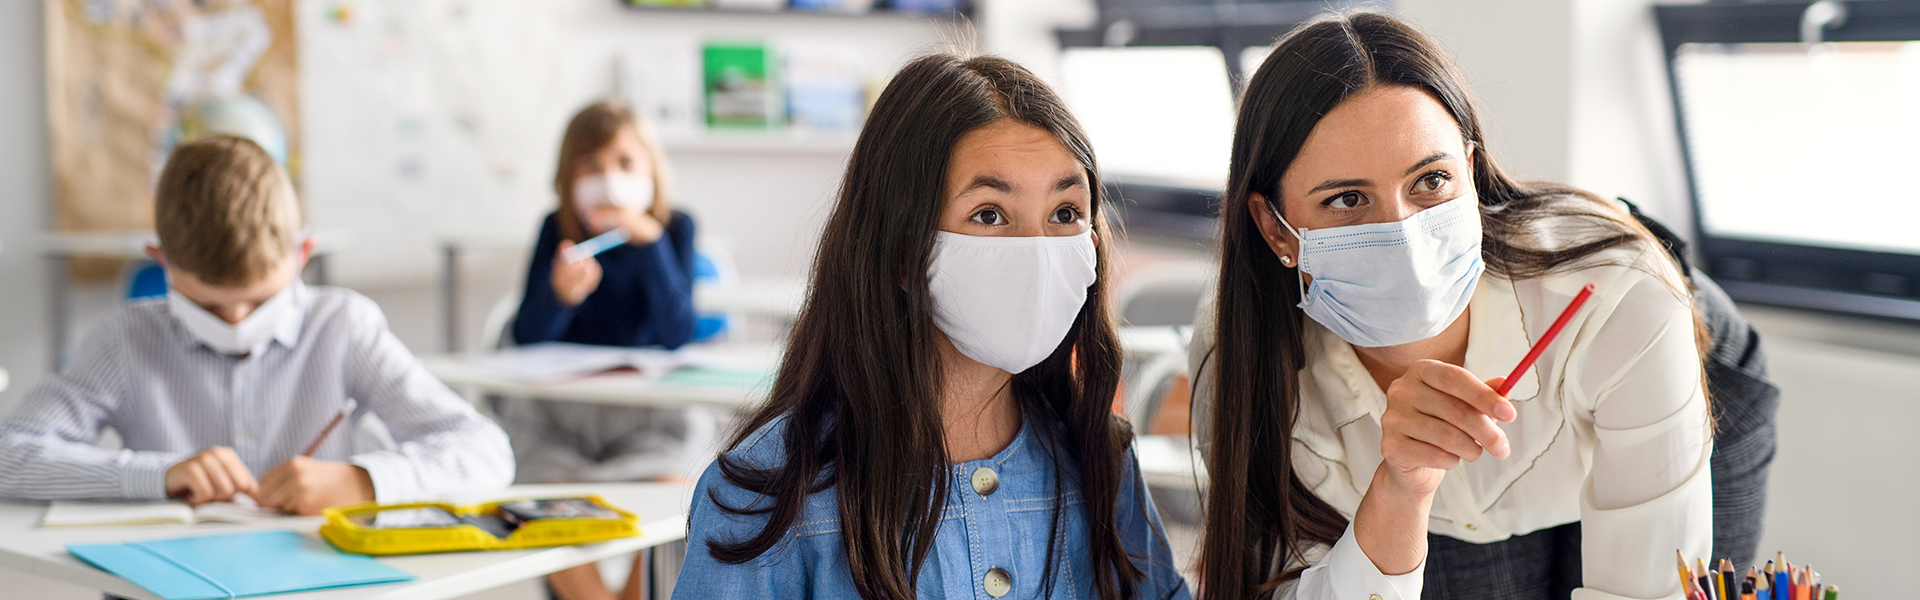 A teacher and a student wearing masks in a classroom.